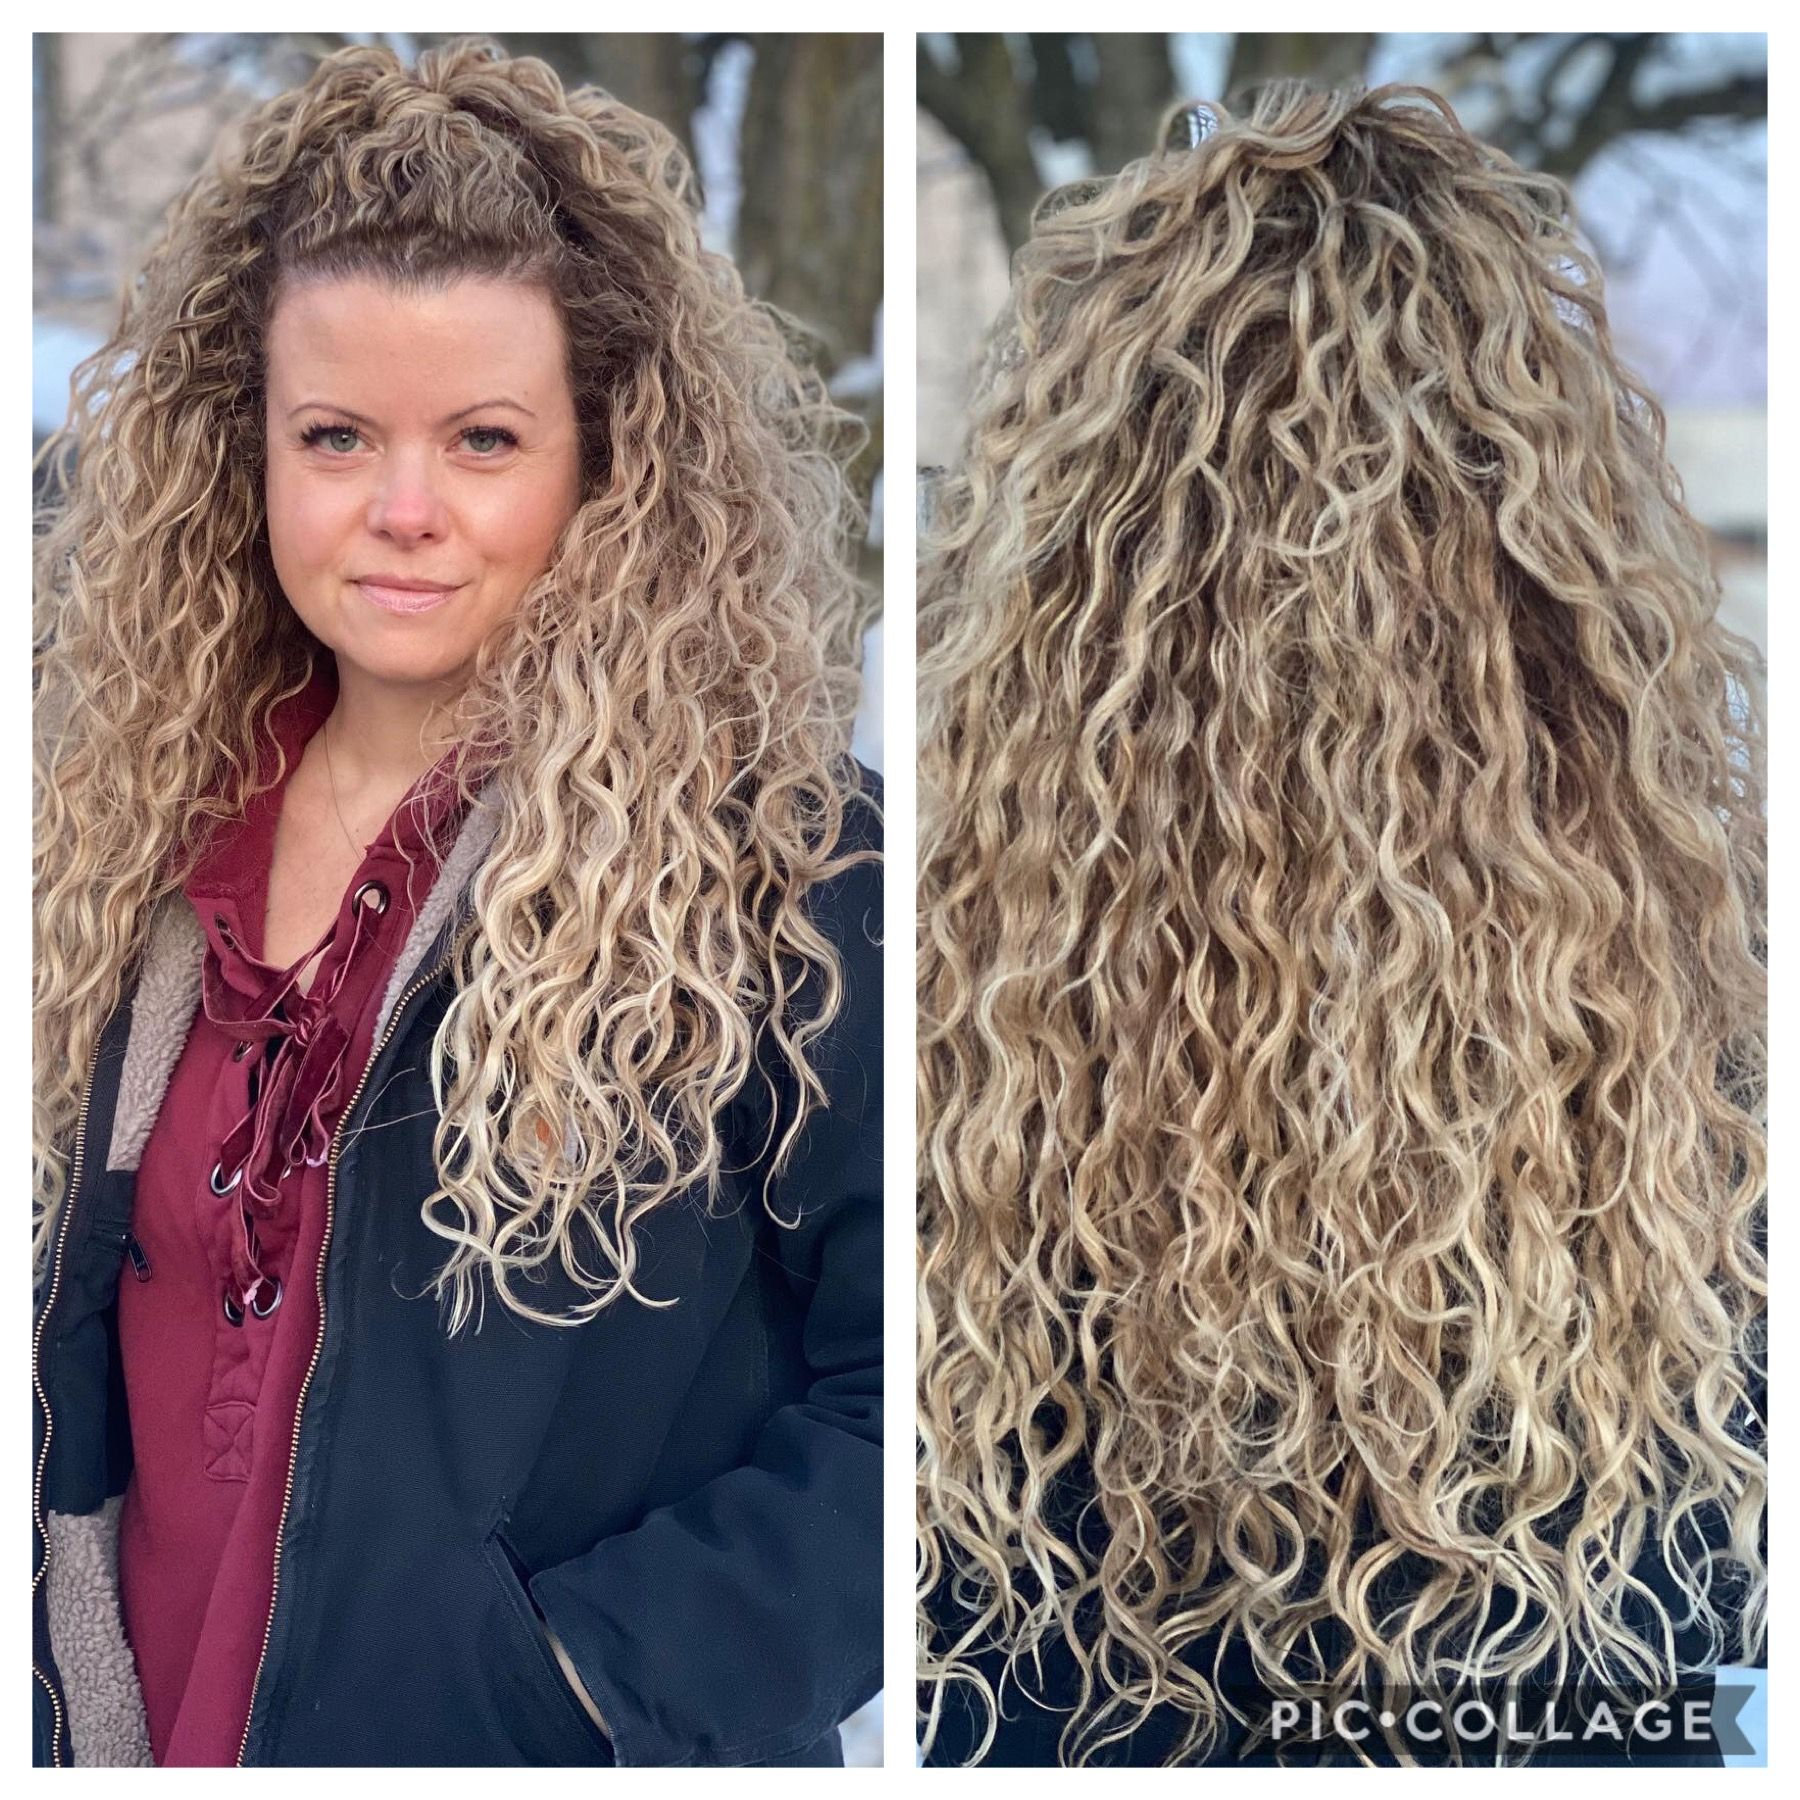 Adored Signature Hand Tied Hair Extensions In 2020 Curly Hair Salon Hair Curly Hair Styles